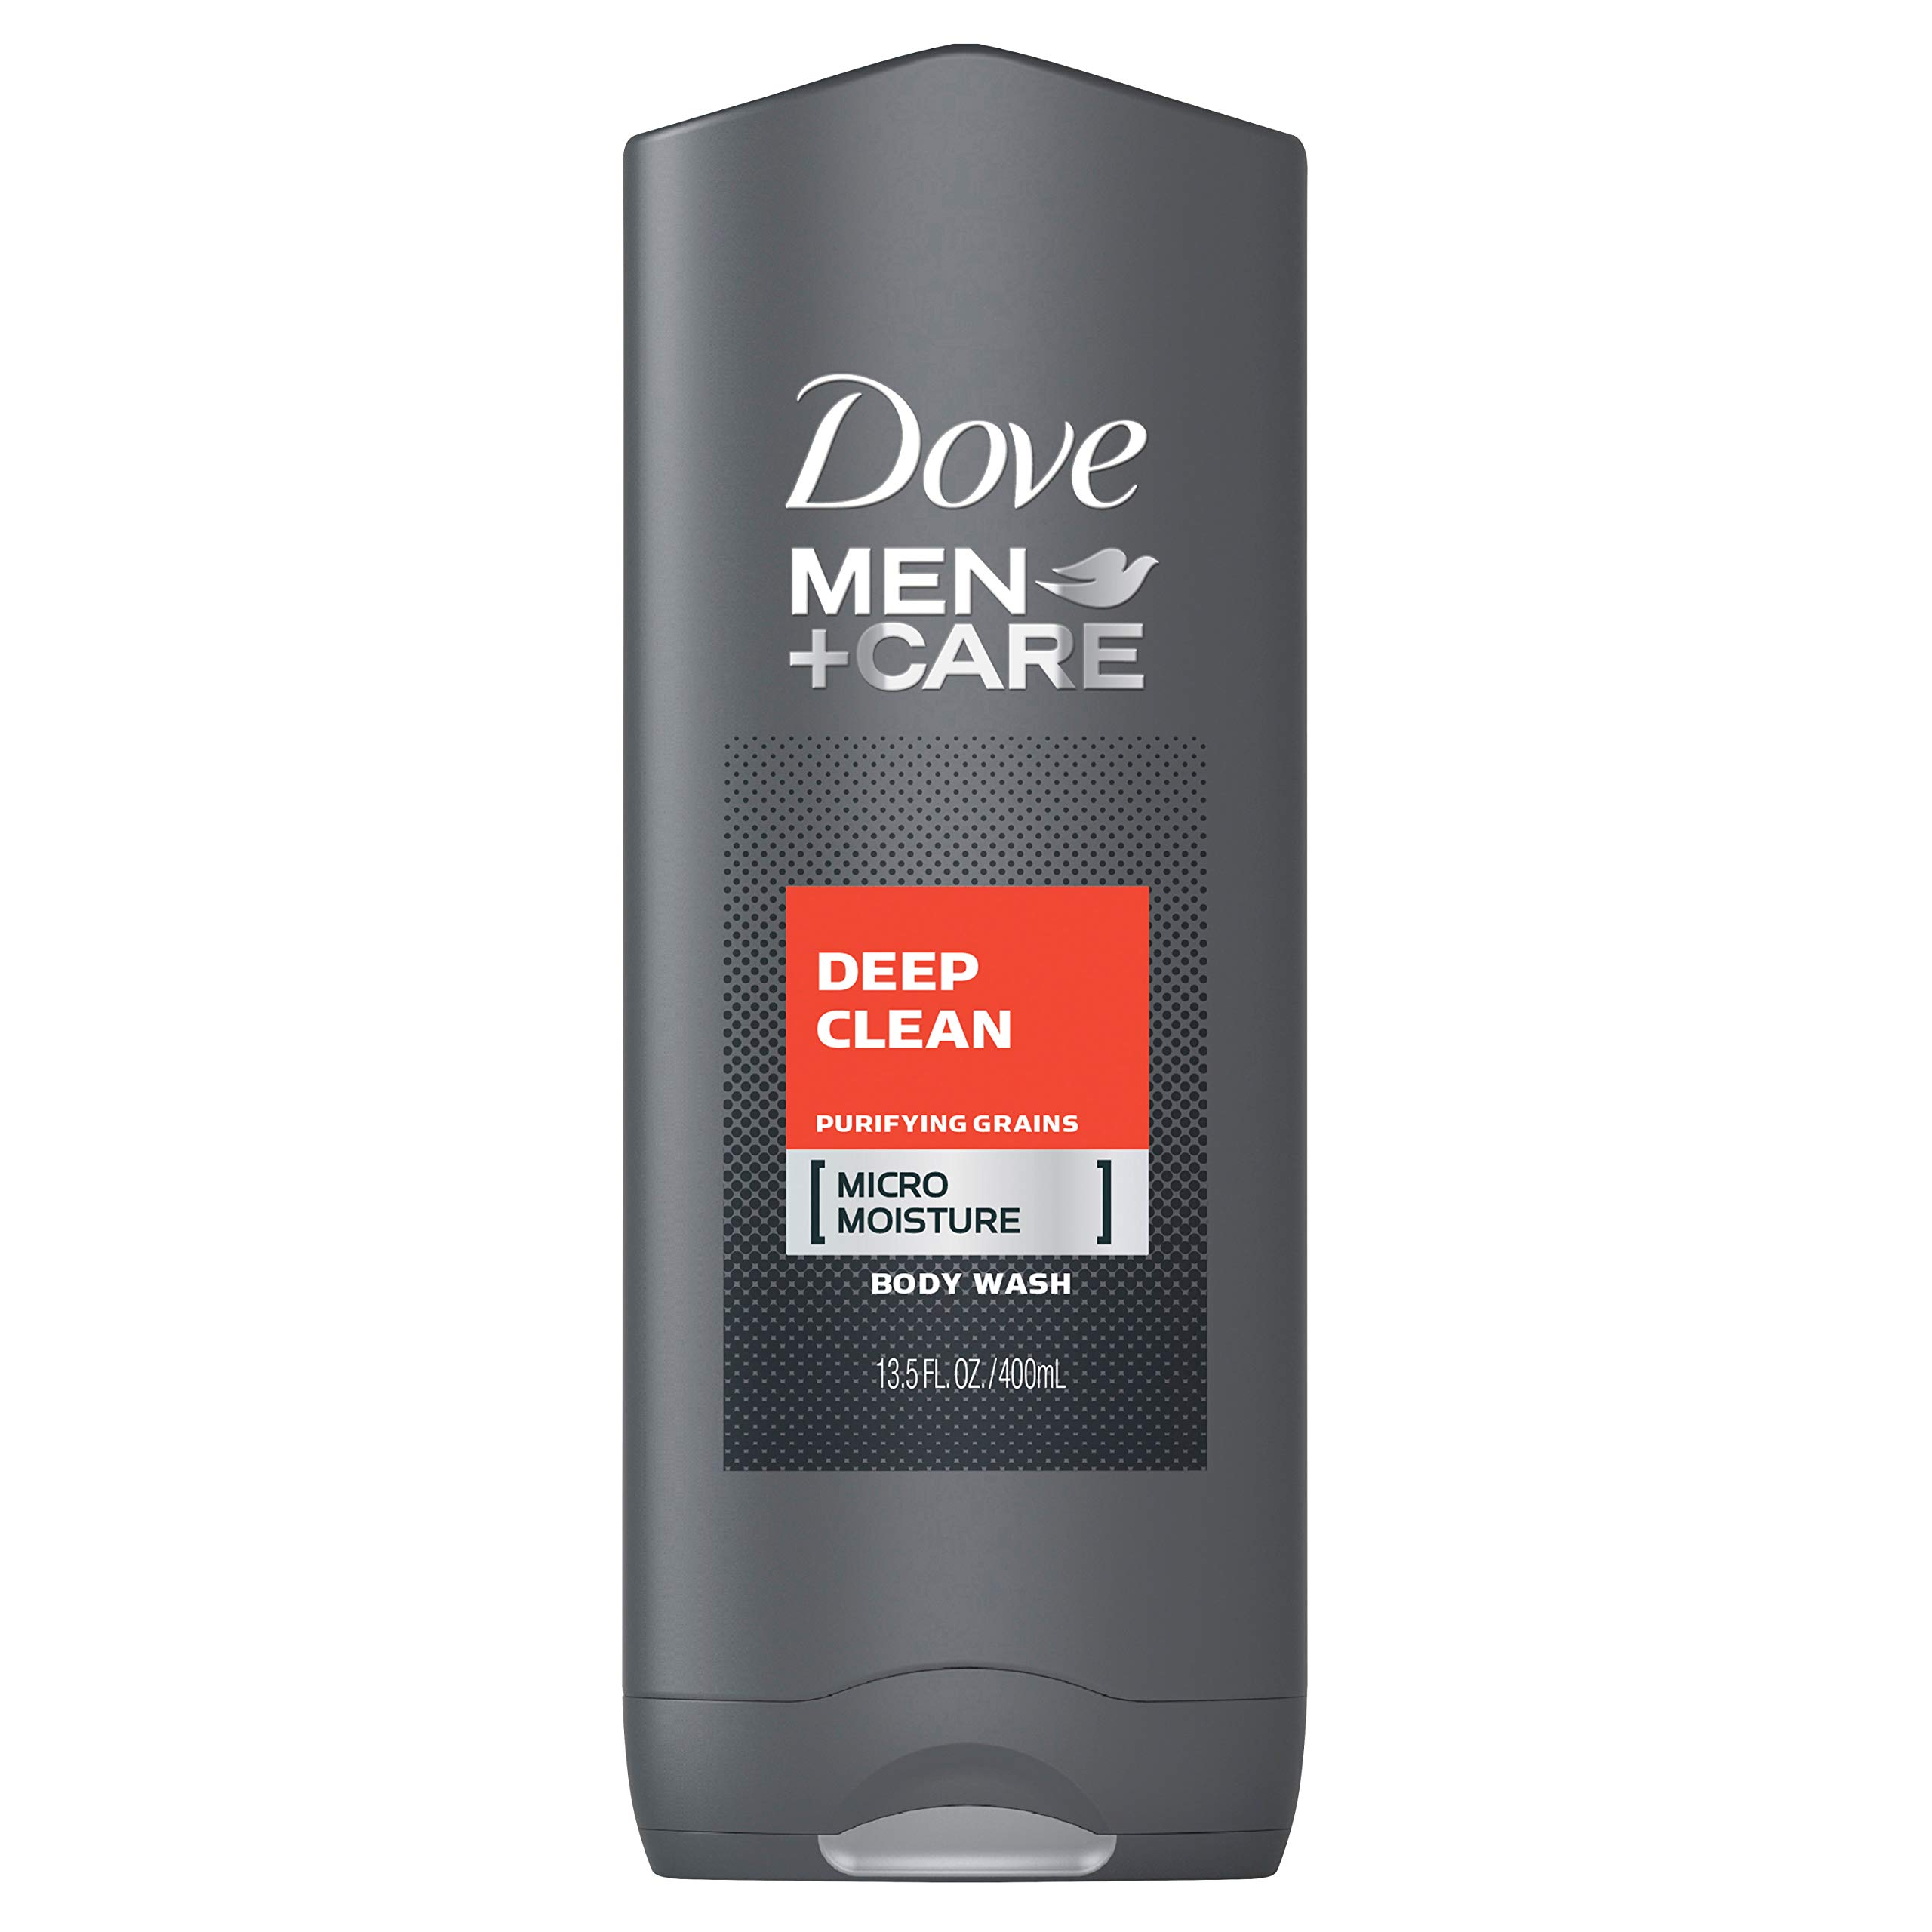 Dove Men+Care Body Wash Deep Clean 13.5 oz for Healthier, Hydrated and Stronger Skin Effectively Washes Away Bacteria While Nourishing Your Skin